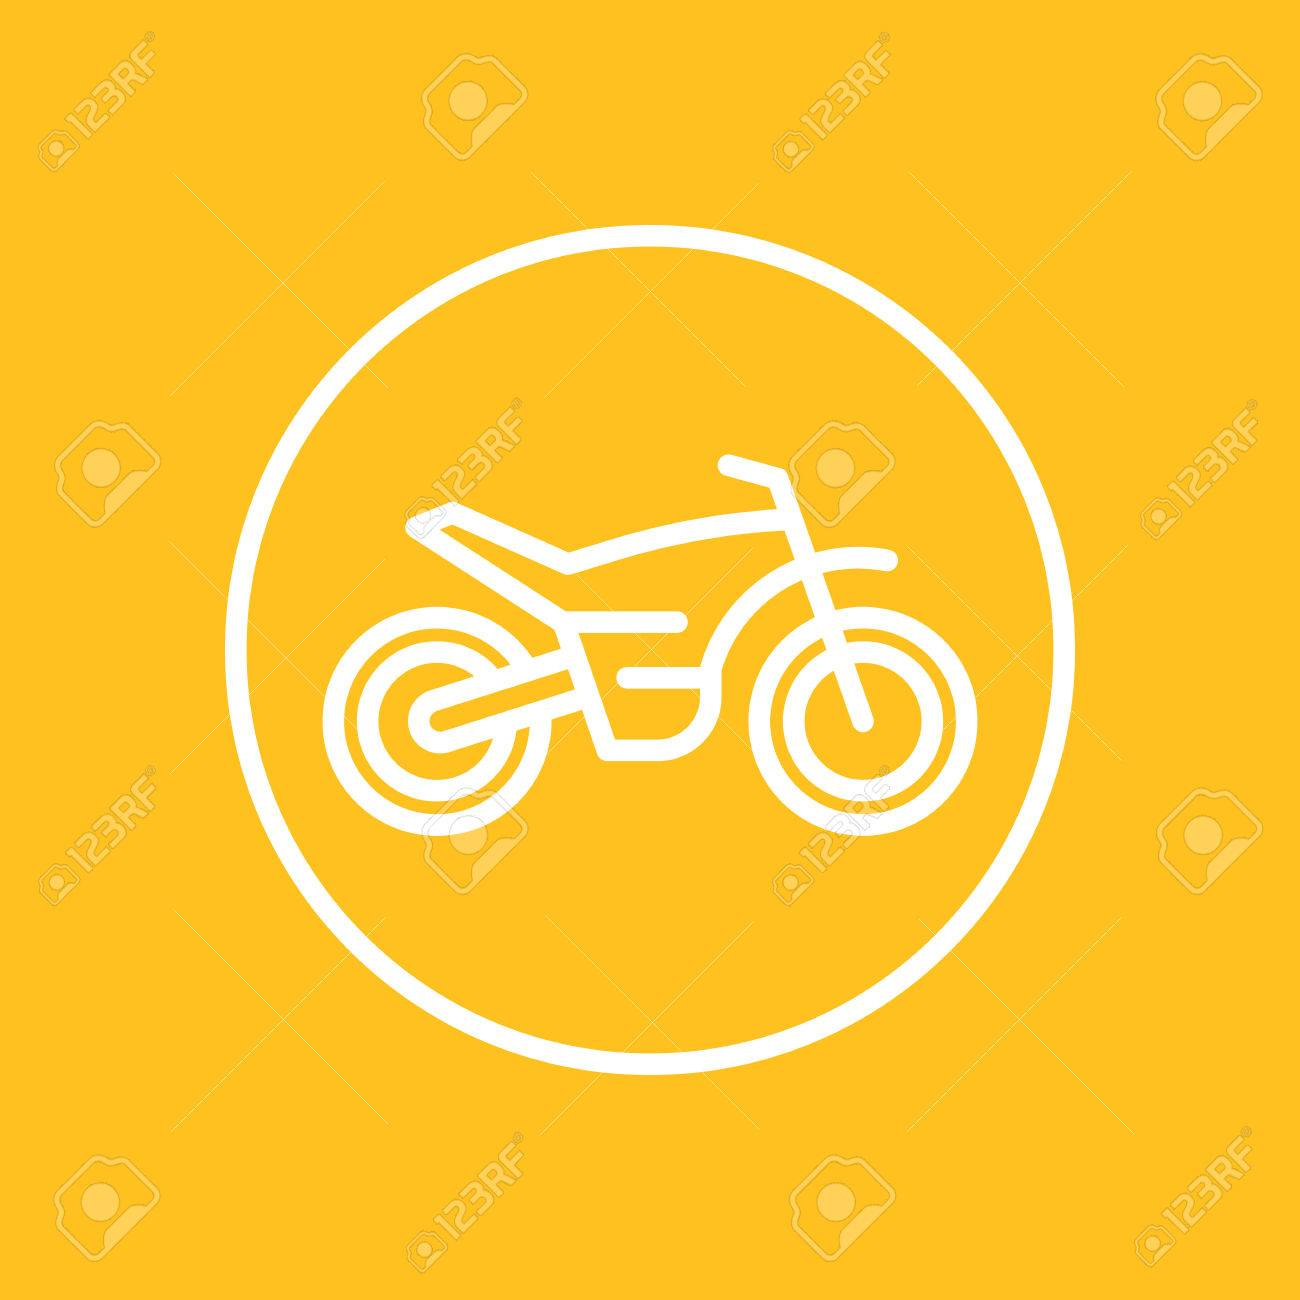 Offroad Bike Motorcycle Line Icon In Circle Motocross Symbol Royalty Free Cliparts Vetores E Ilustracoes Stock Image 79510392